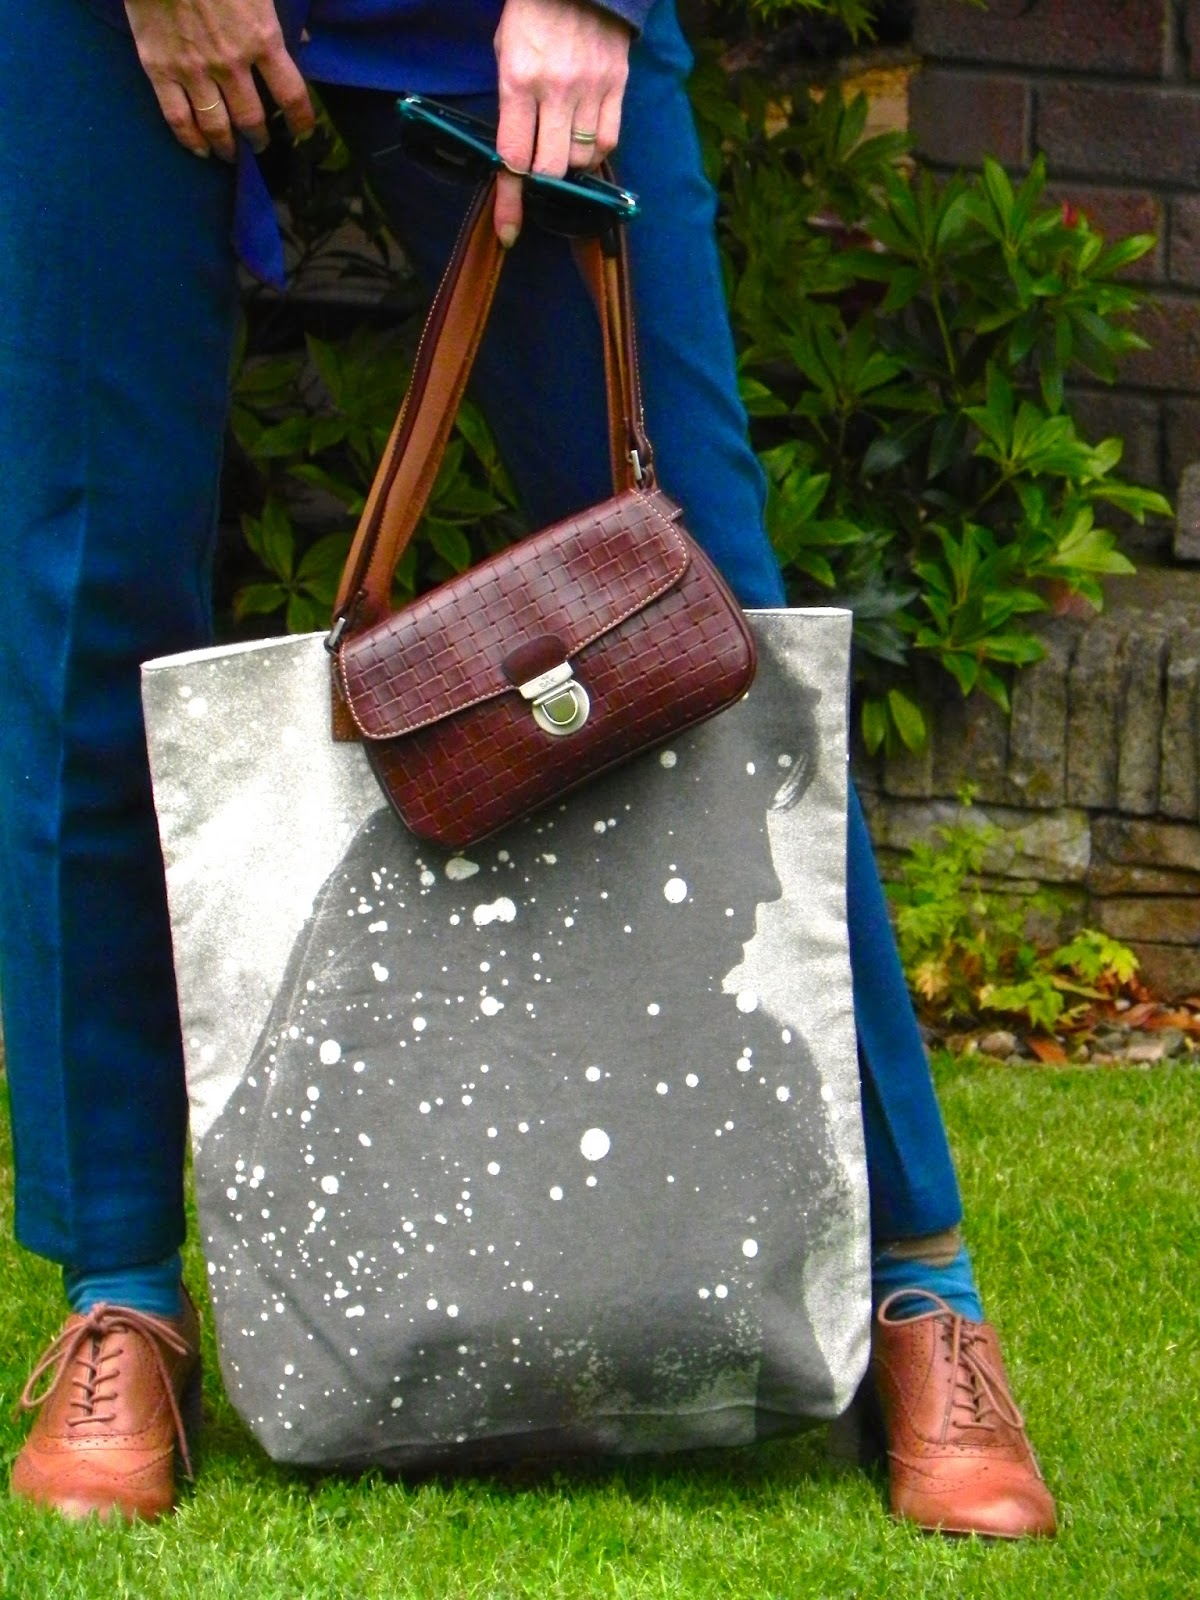 The Sak bag, Beck Sonder Gaard shopper, Clarks Brogues.